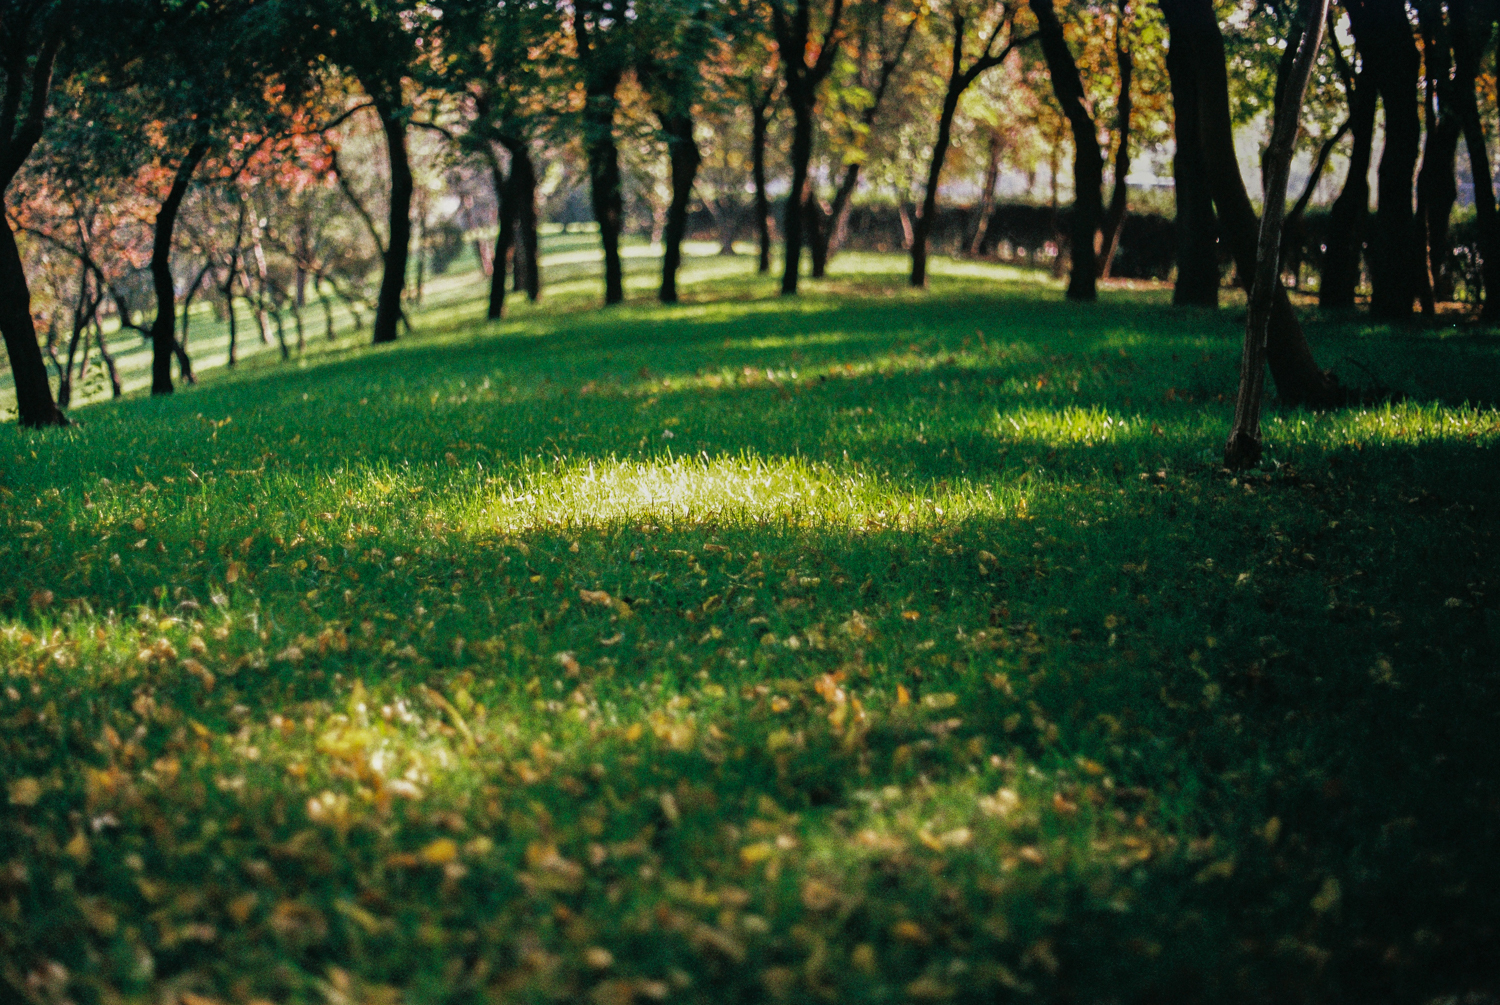 Usual Park Days in Autumn – 35mm